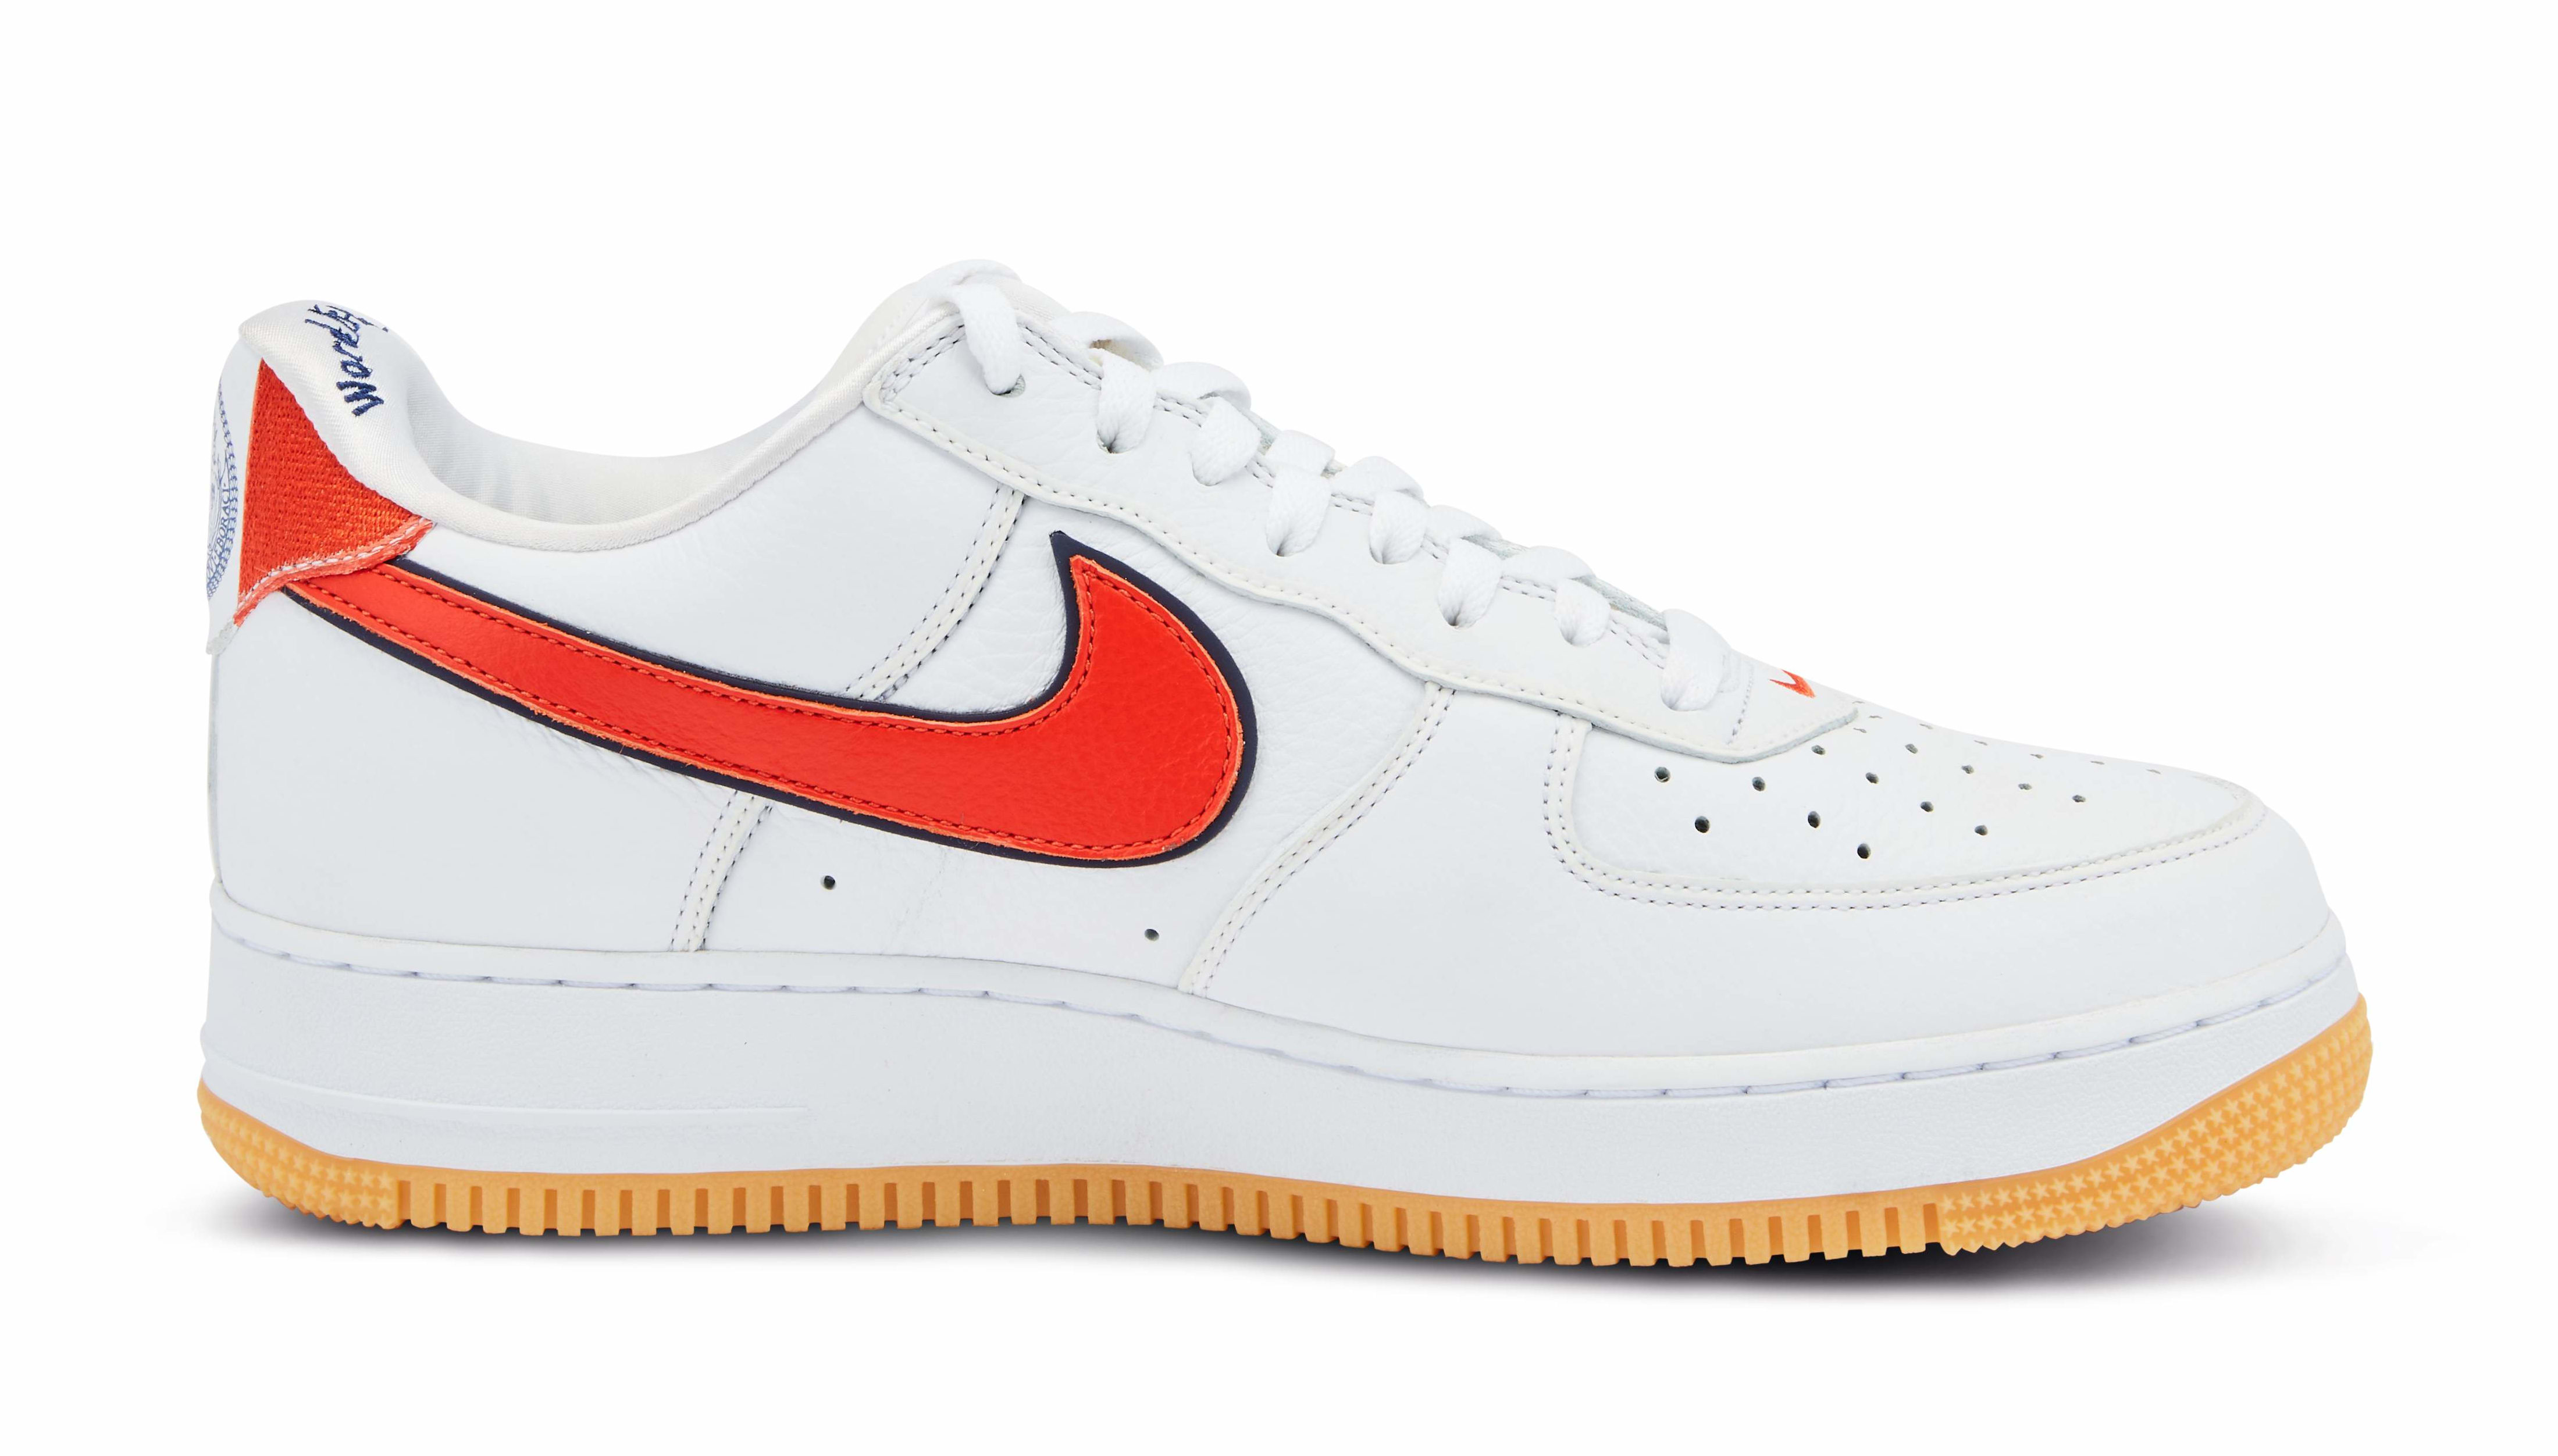 Scarr's Pizza x Nike Air Force 1 Low Medial